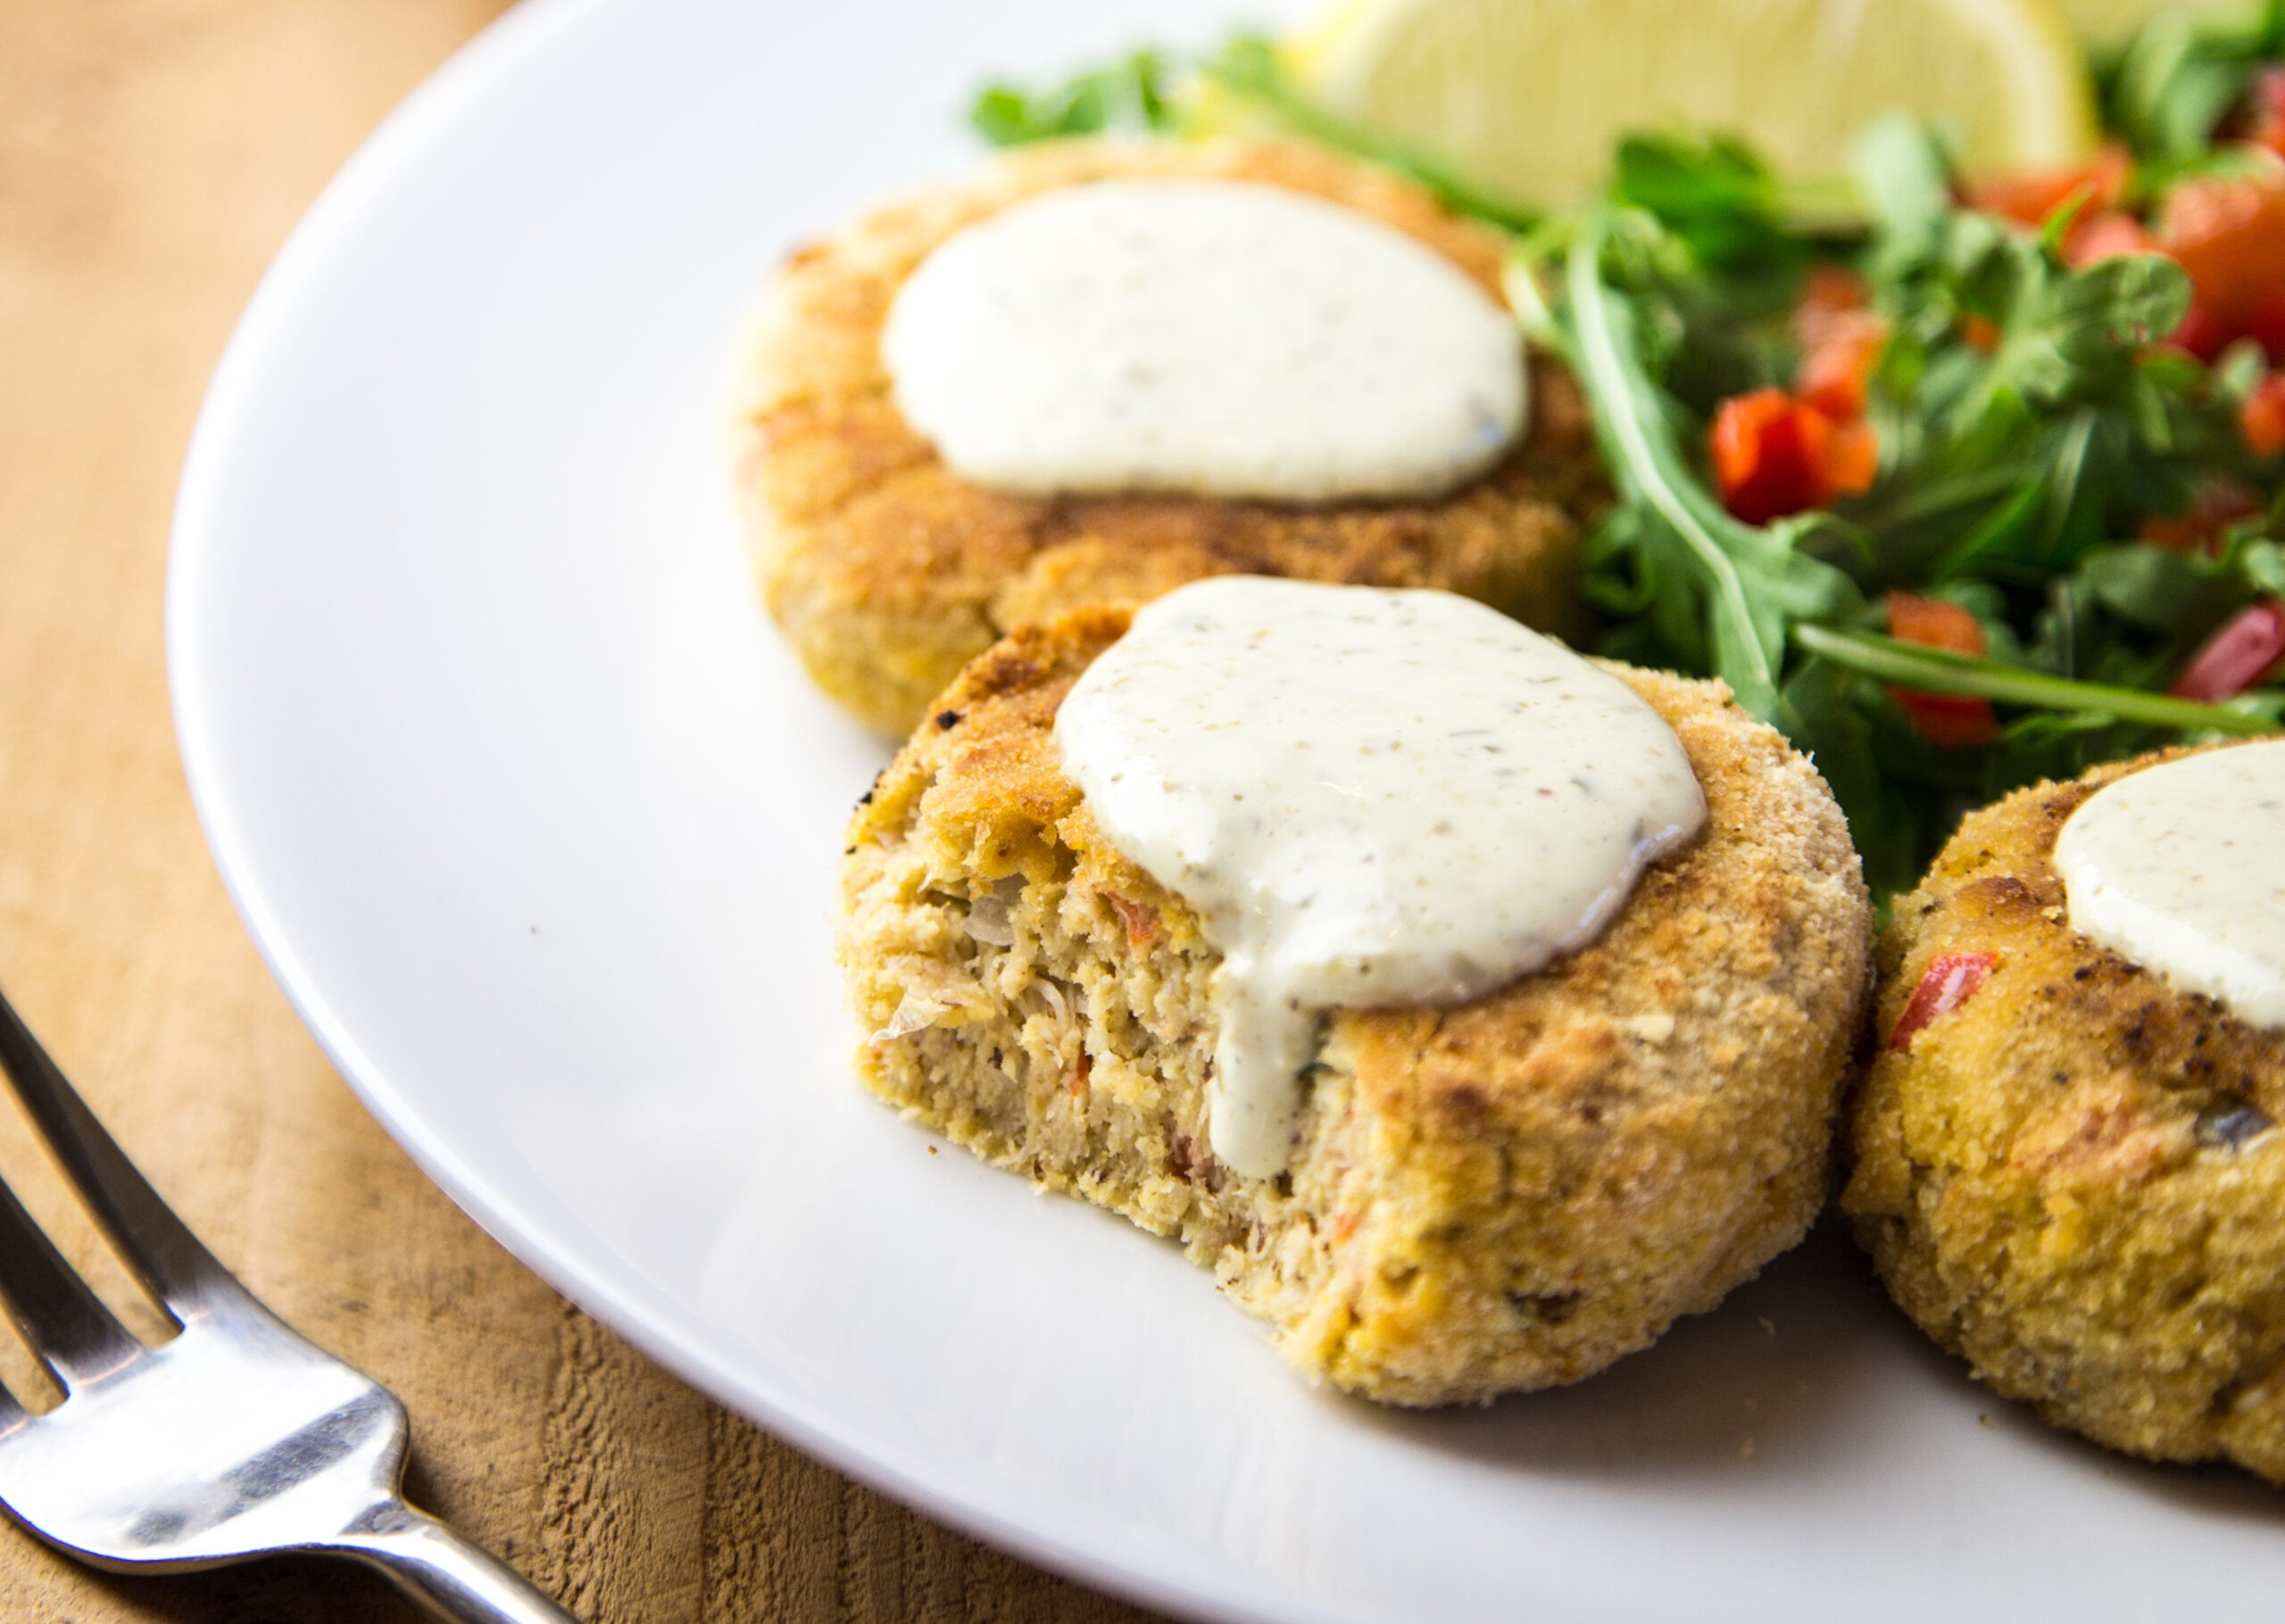 5 Healthy and Delicious Candida Diet Snack Recipes